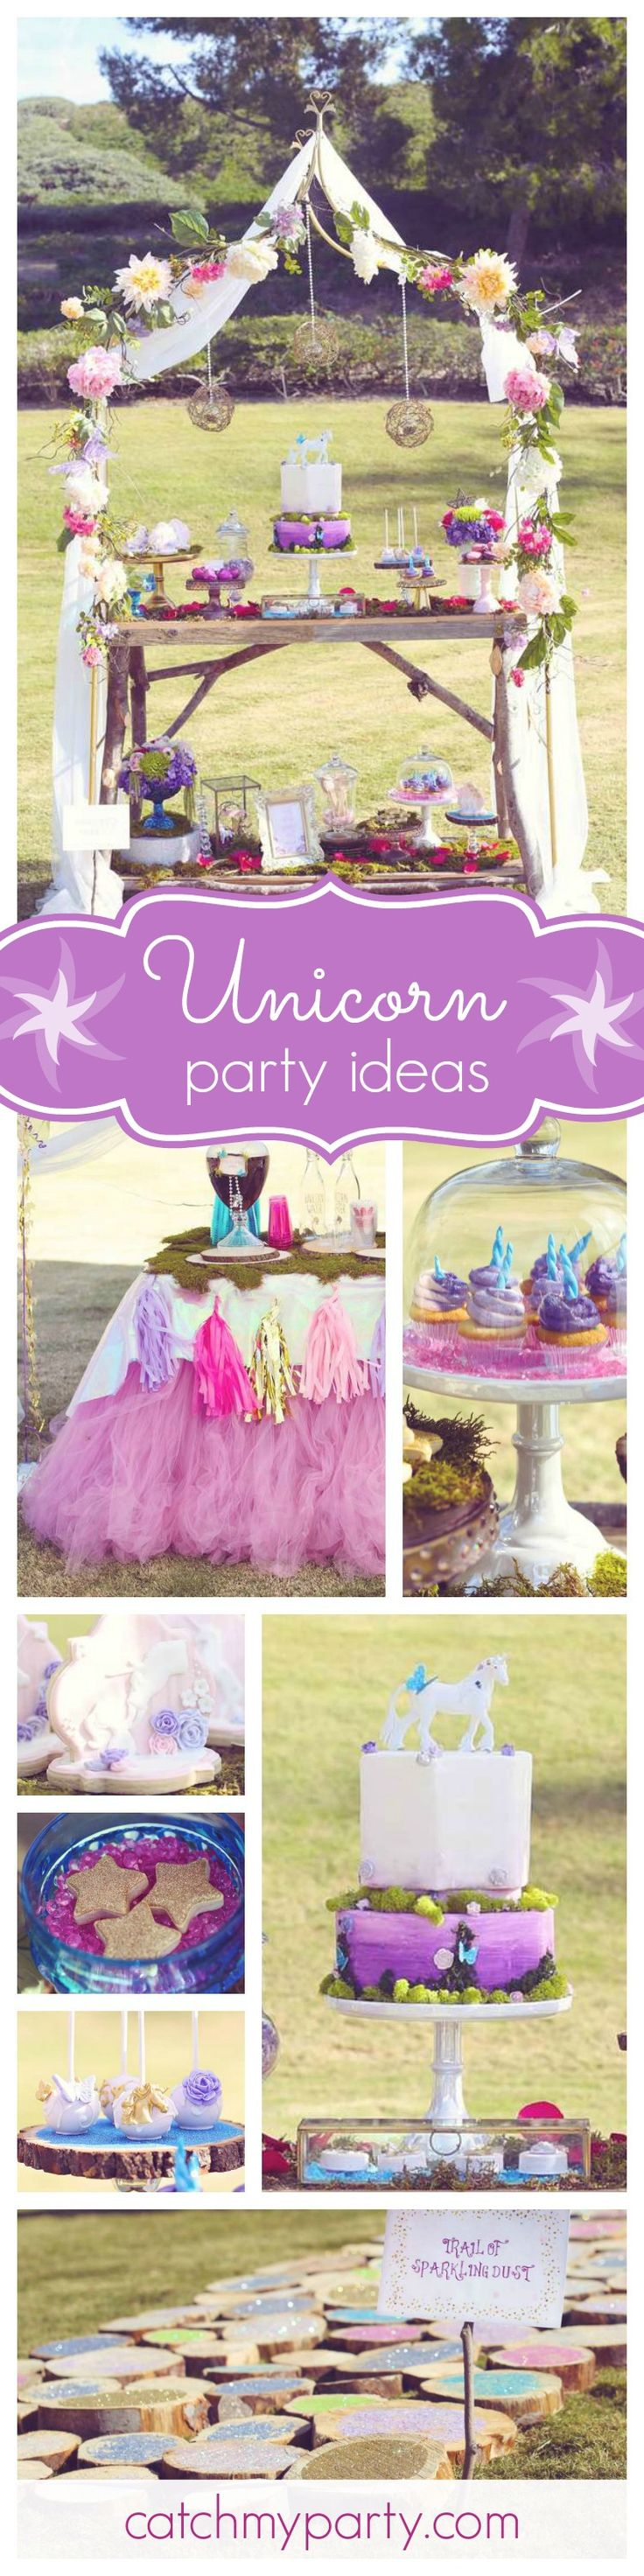 This Unicorn Princess birthday party is absolutely gorgeous! You won't want to miss it. The dessert table is a dream! See more party ideas at CatchMyParty.com